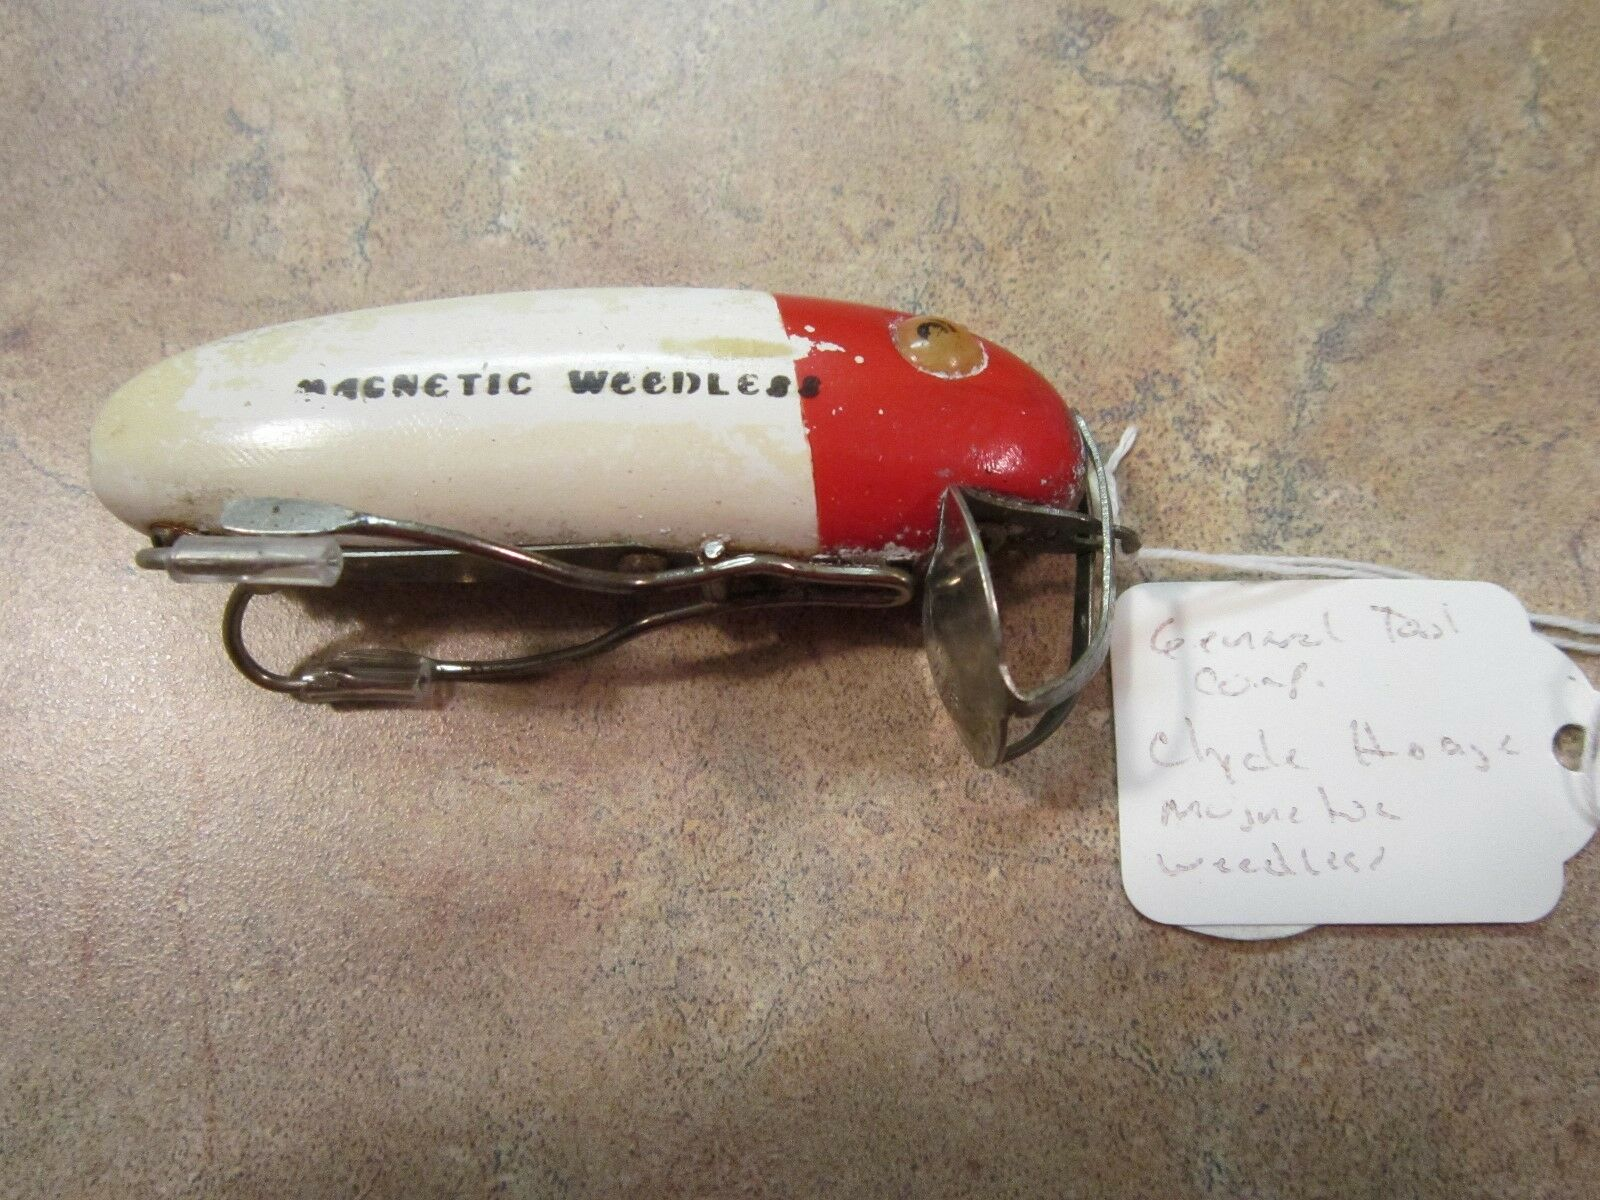 VINTAGE CLYDE HODGE WEEDLESS LURE